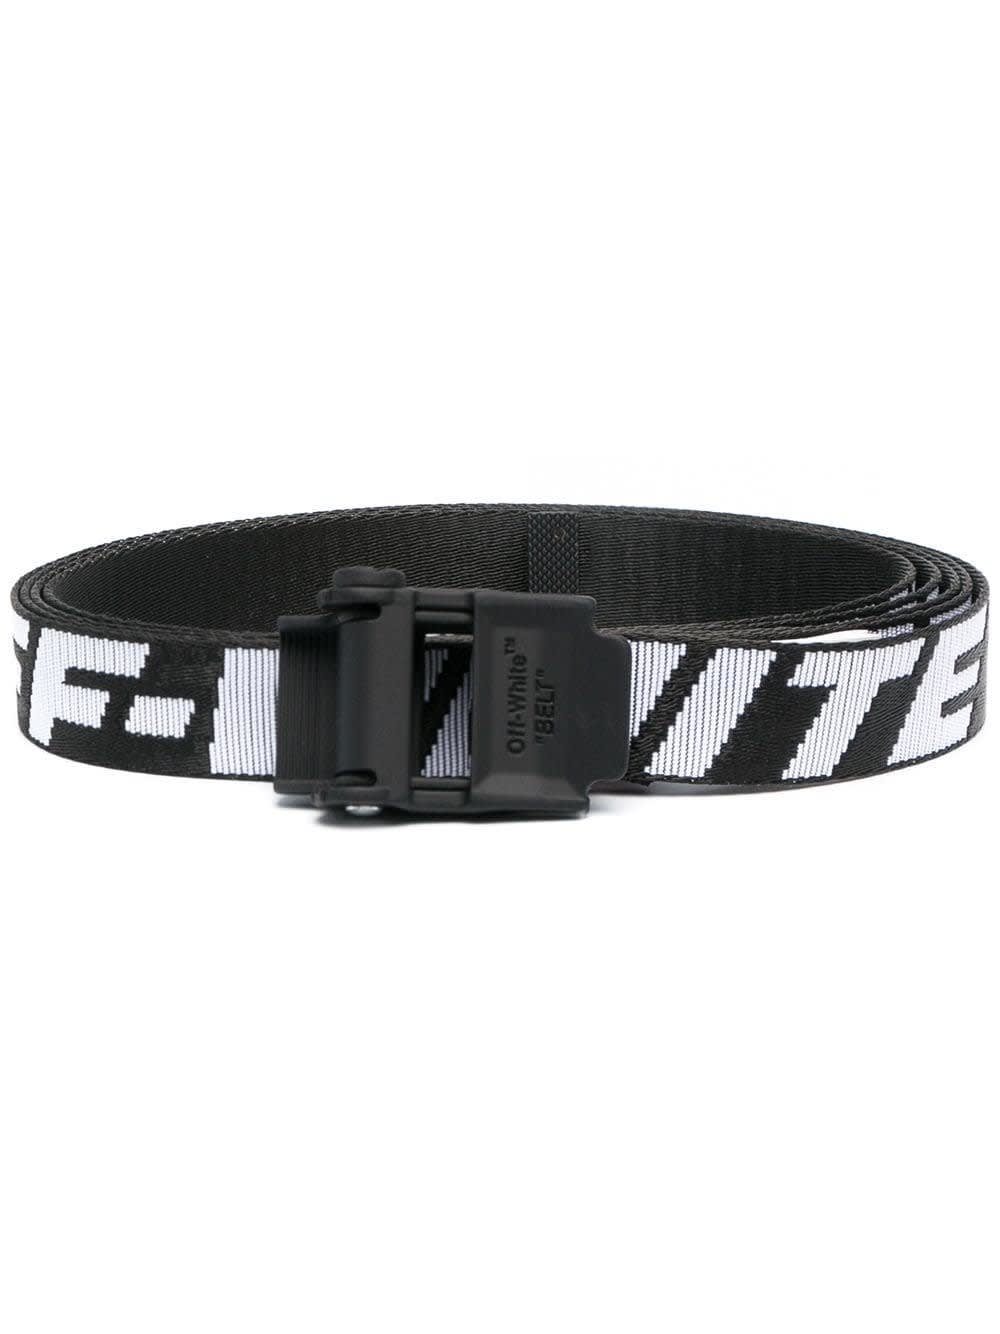 Off-White Belts INDUSTRIAL BELT IN BLACK AND WHITE NYLON